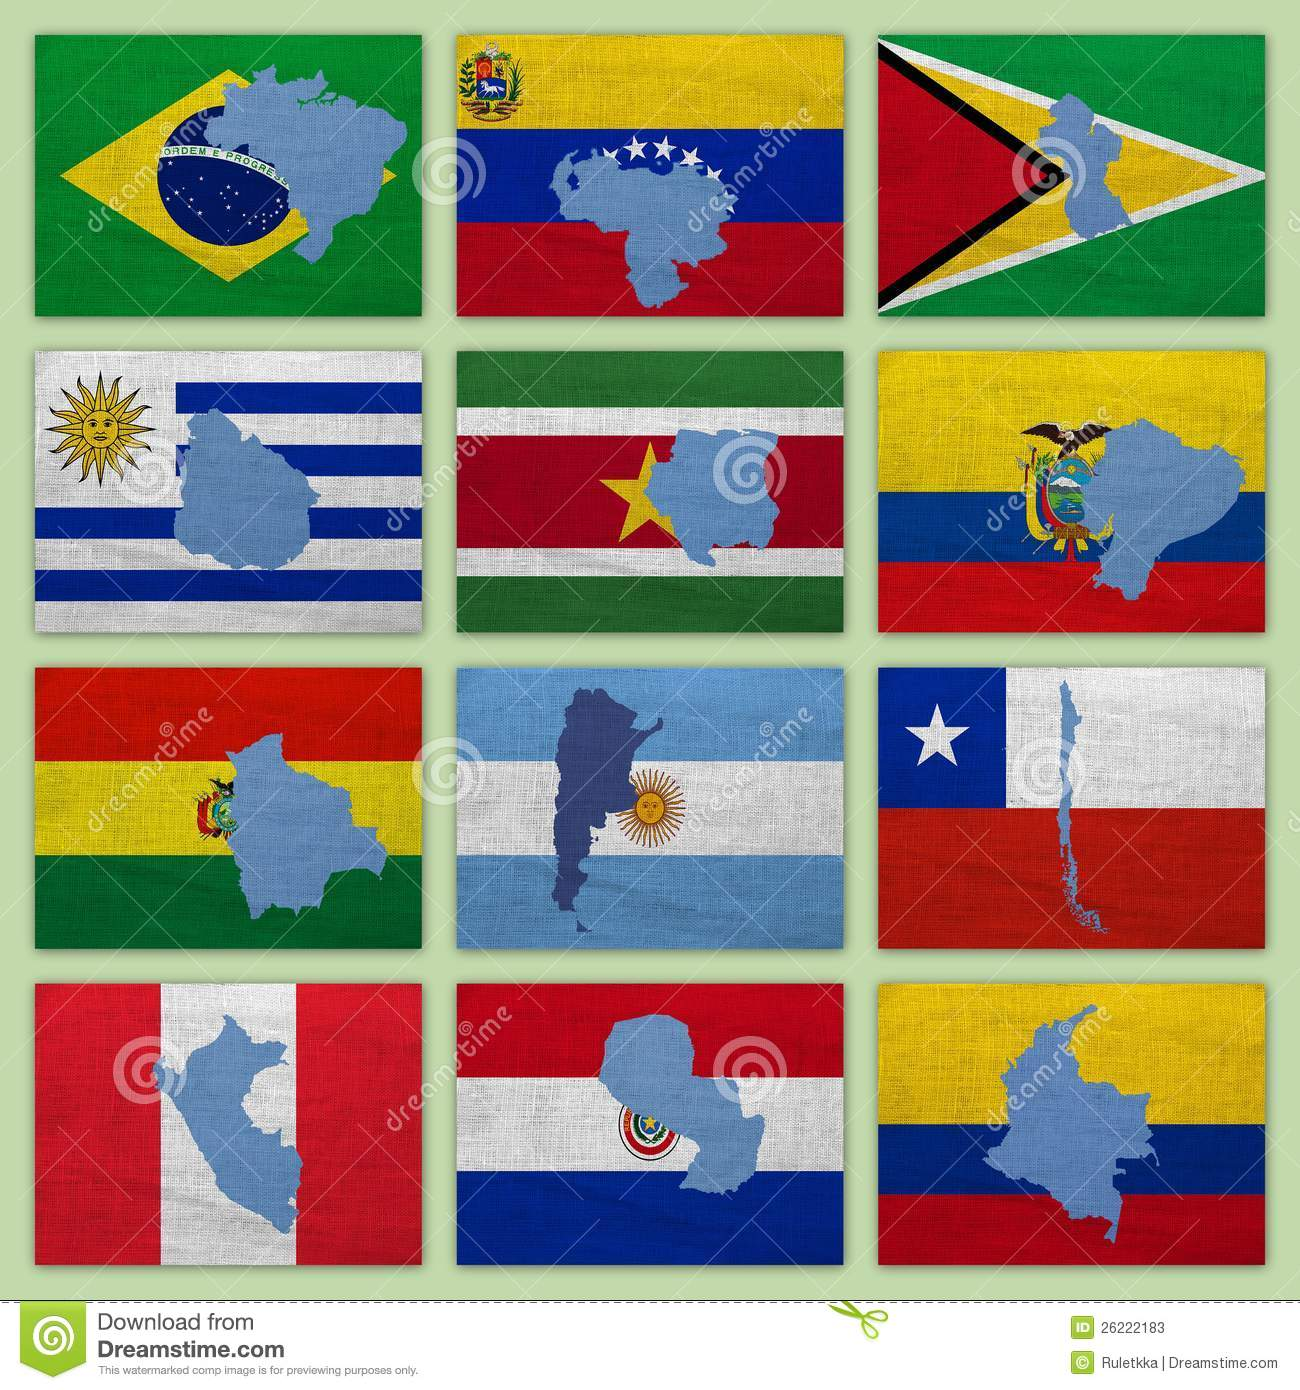 Flags And Maps Of South America Countries Stock Photos Image - South america map and flags